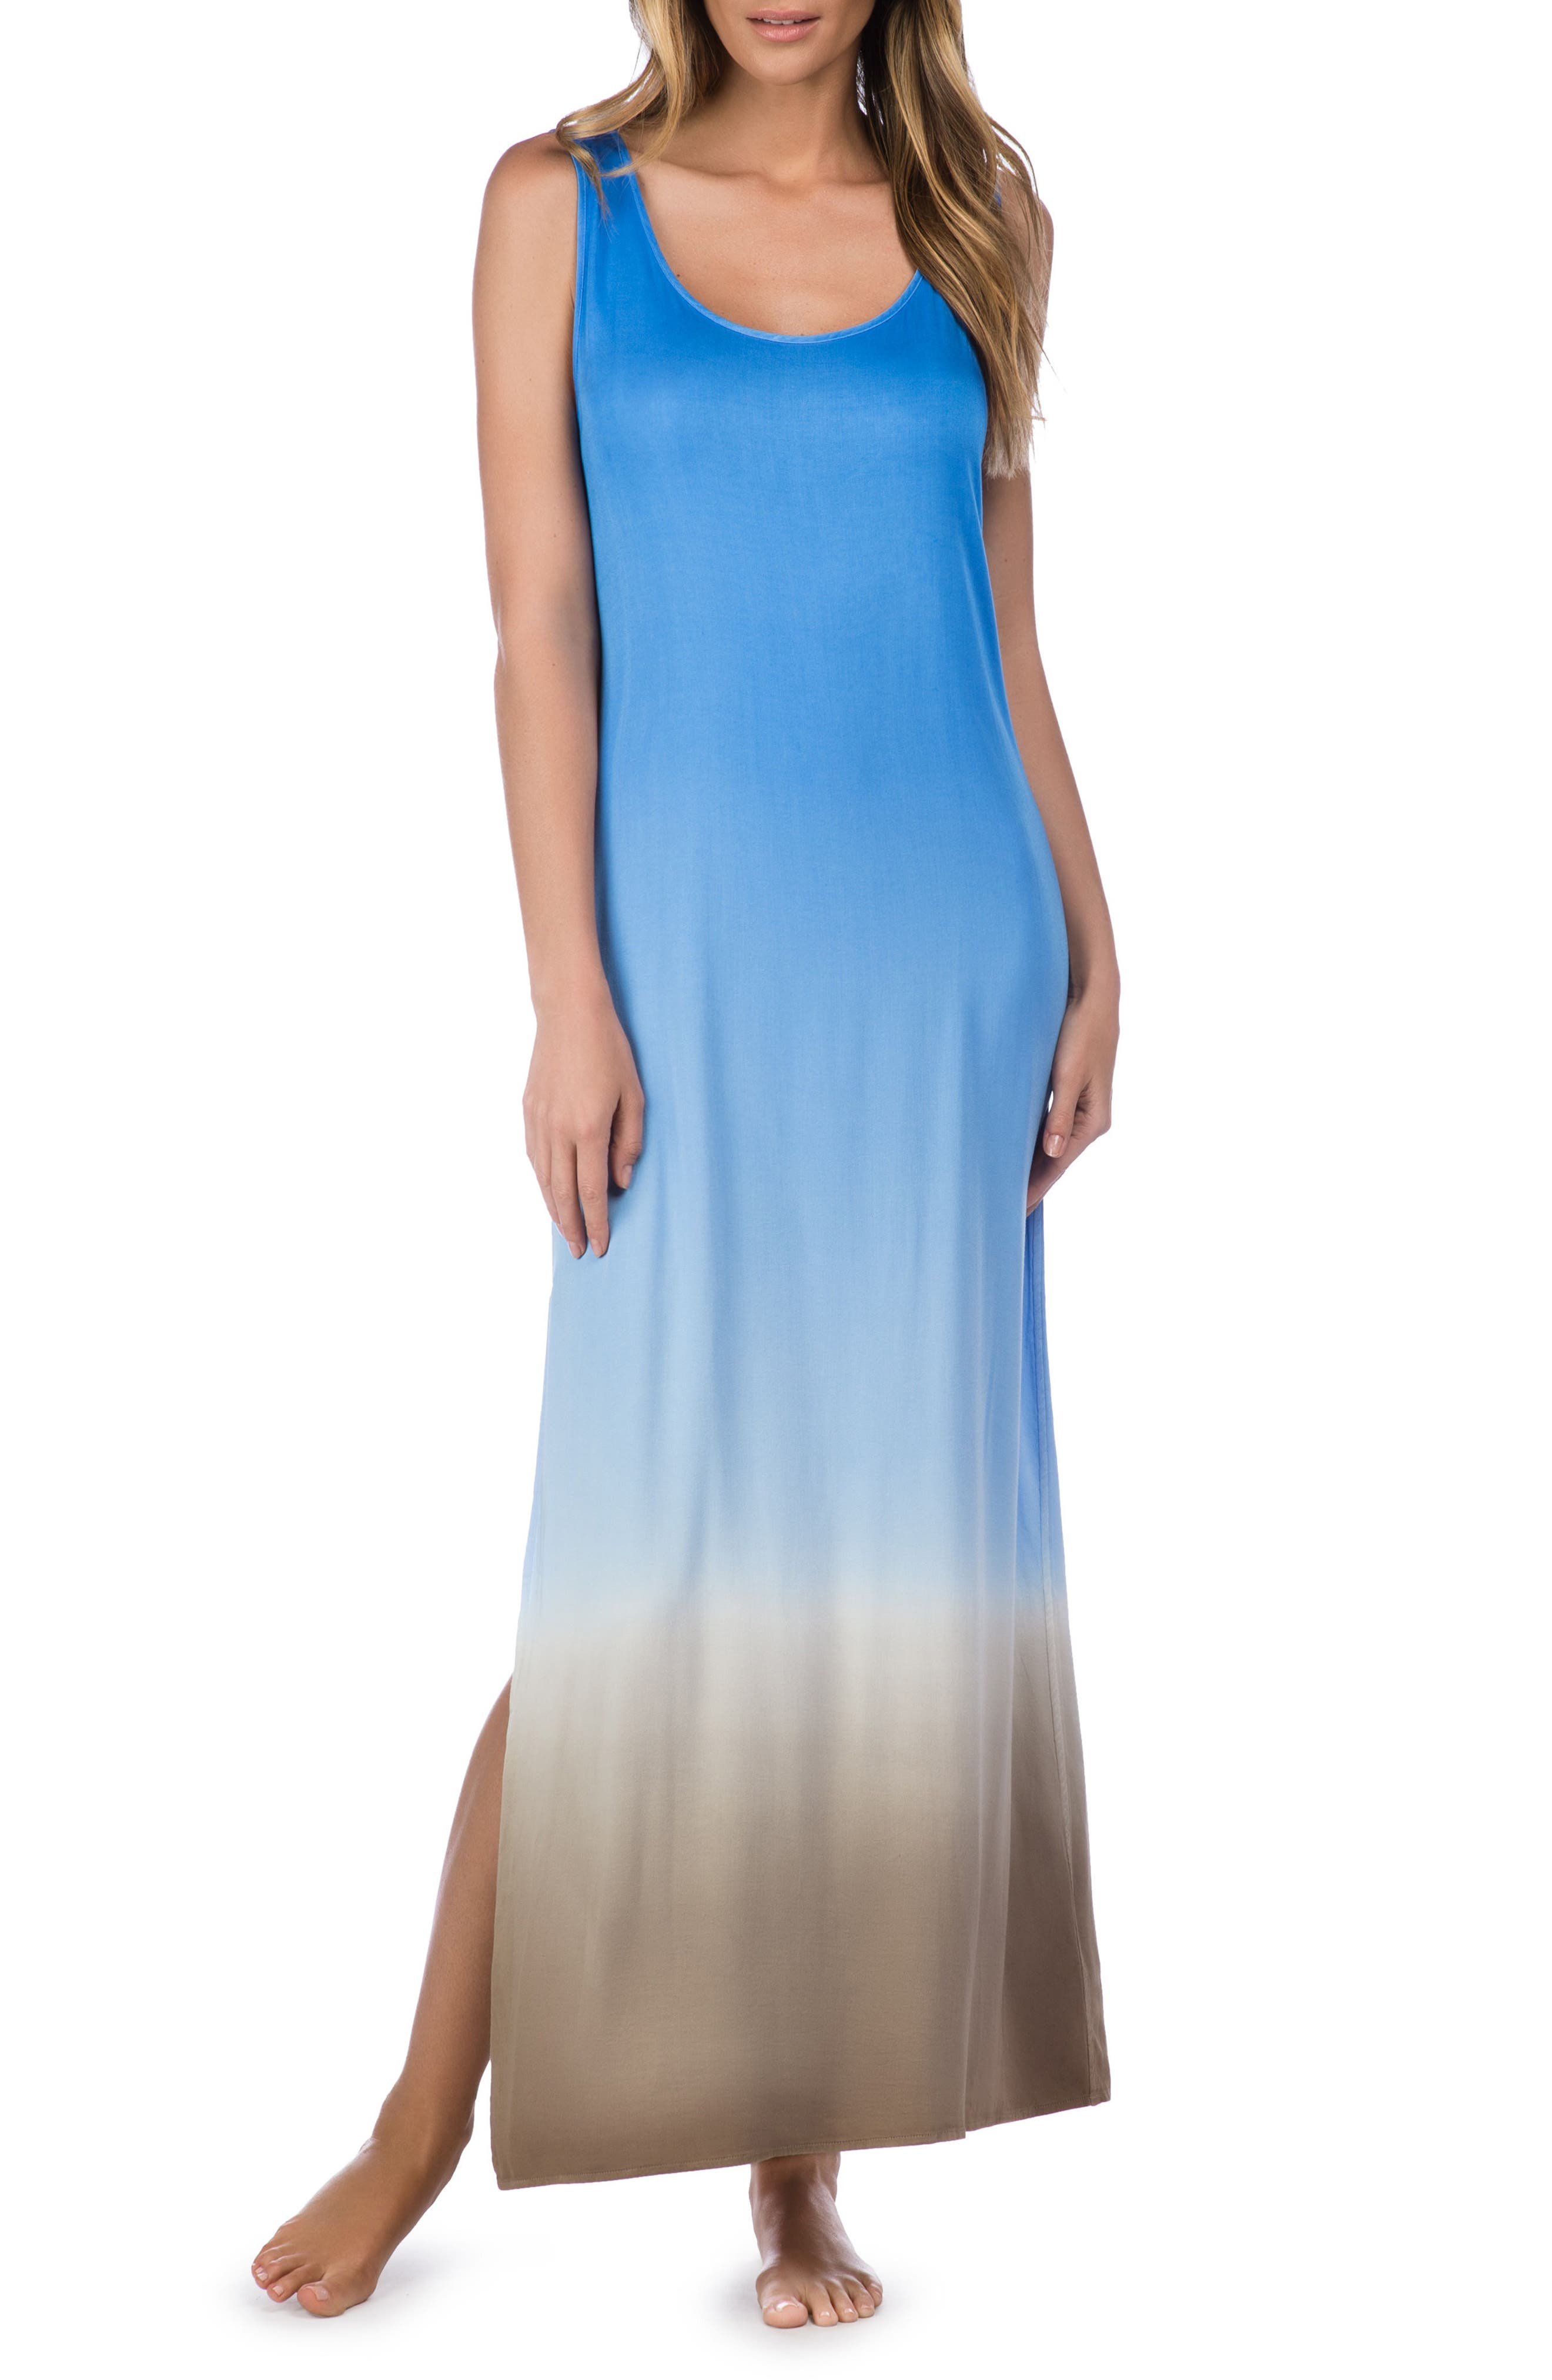 Alternate Image 1 Selected - La Blanca Convertible Cover-Up Maxi Dress